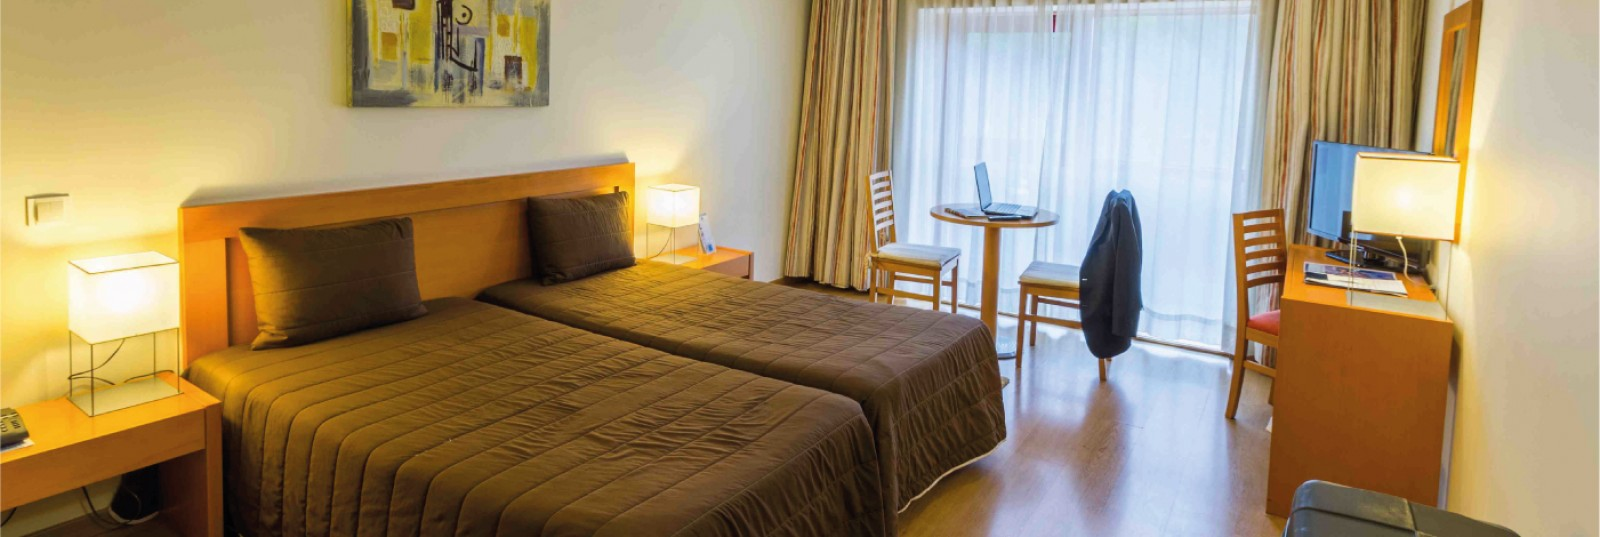 Eurosol Residence Apartment Hotel - Twin (T0)